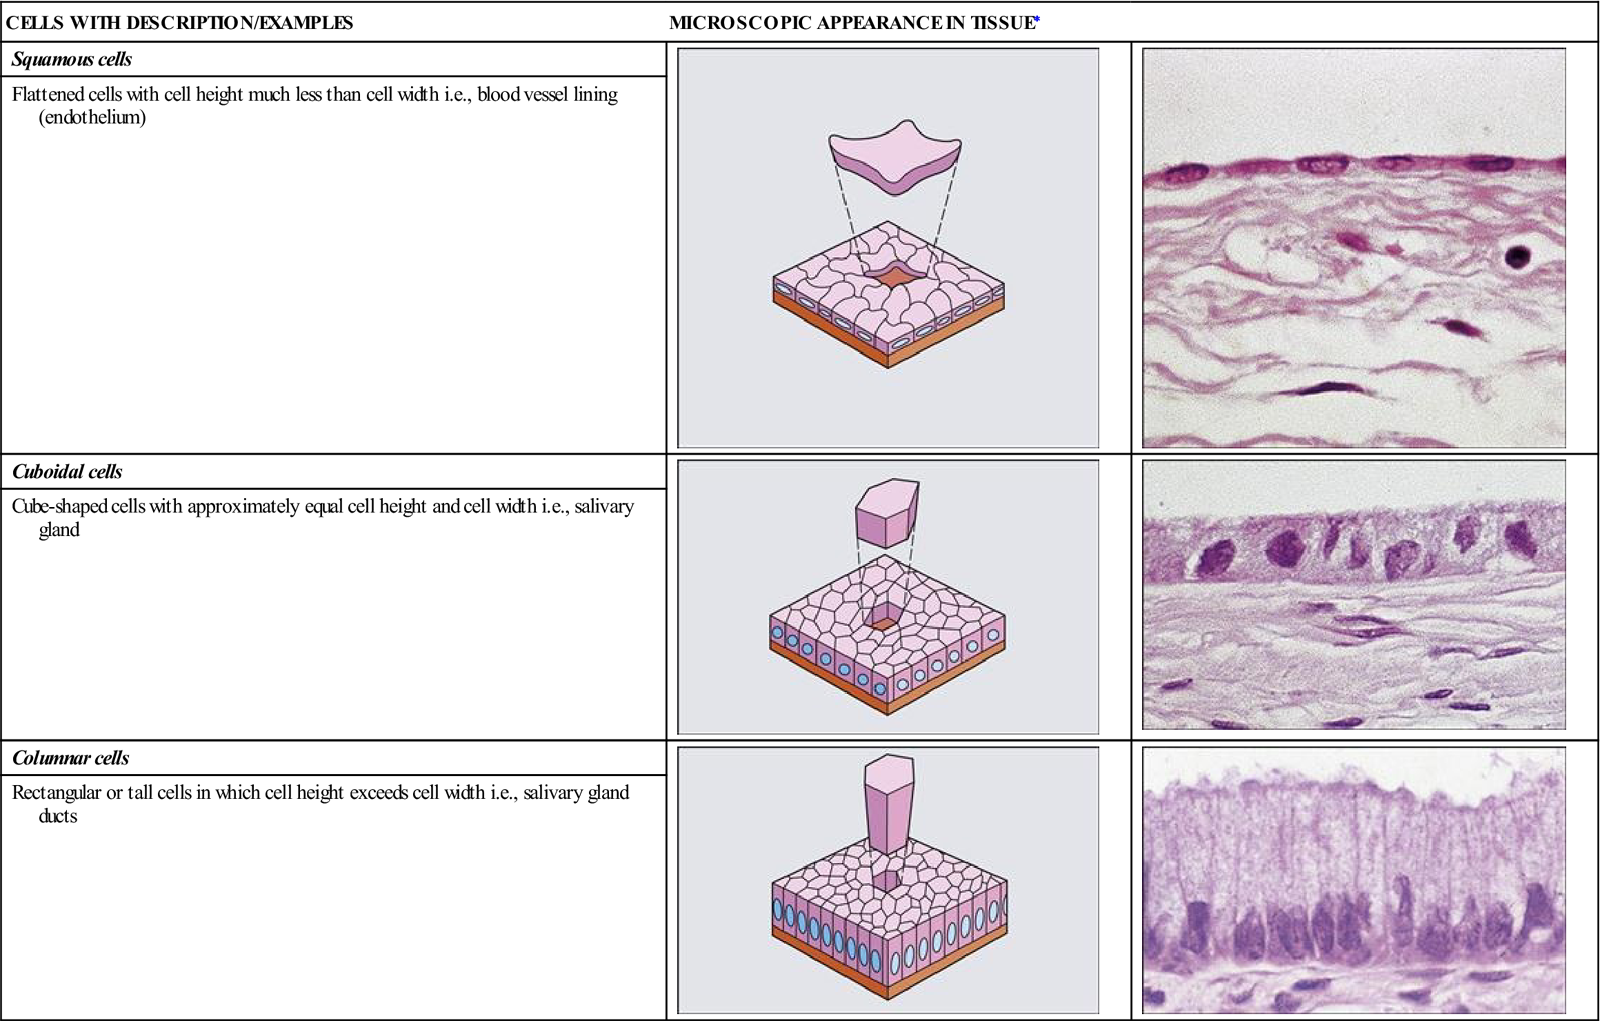 note that these epithelial cells are shown within simple epithelium   diagrams from stevens a, lowe j: human histology, ed 3, mosby, st louis,  2005